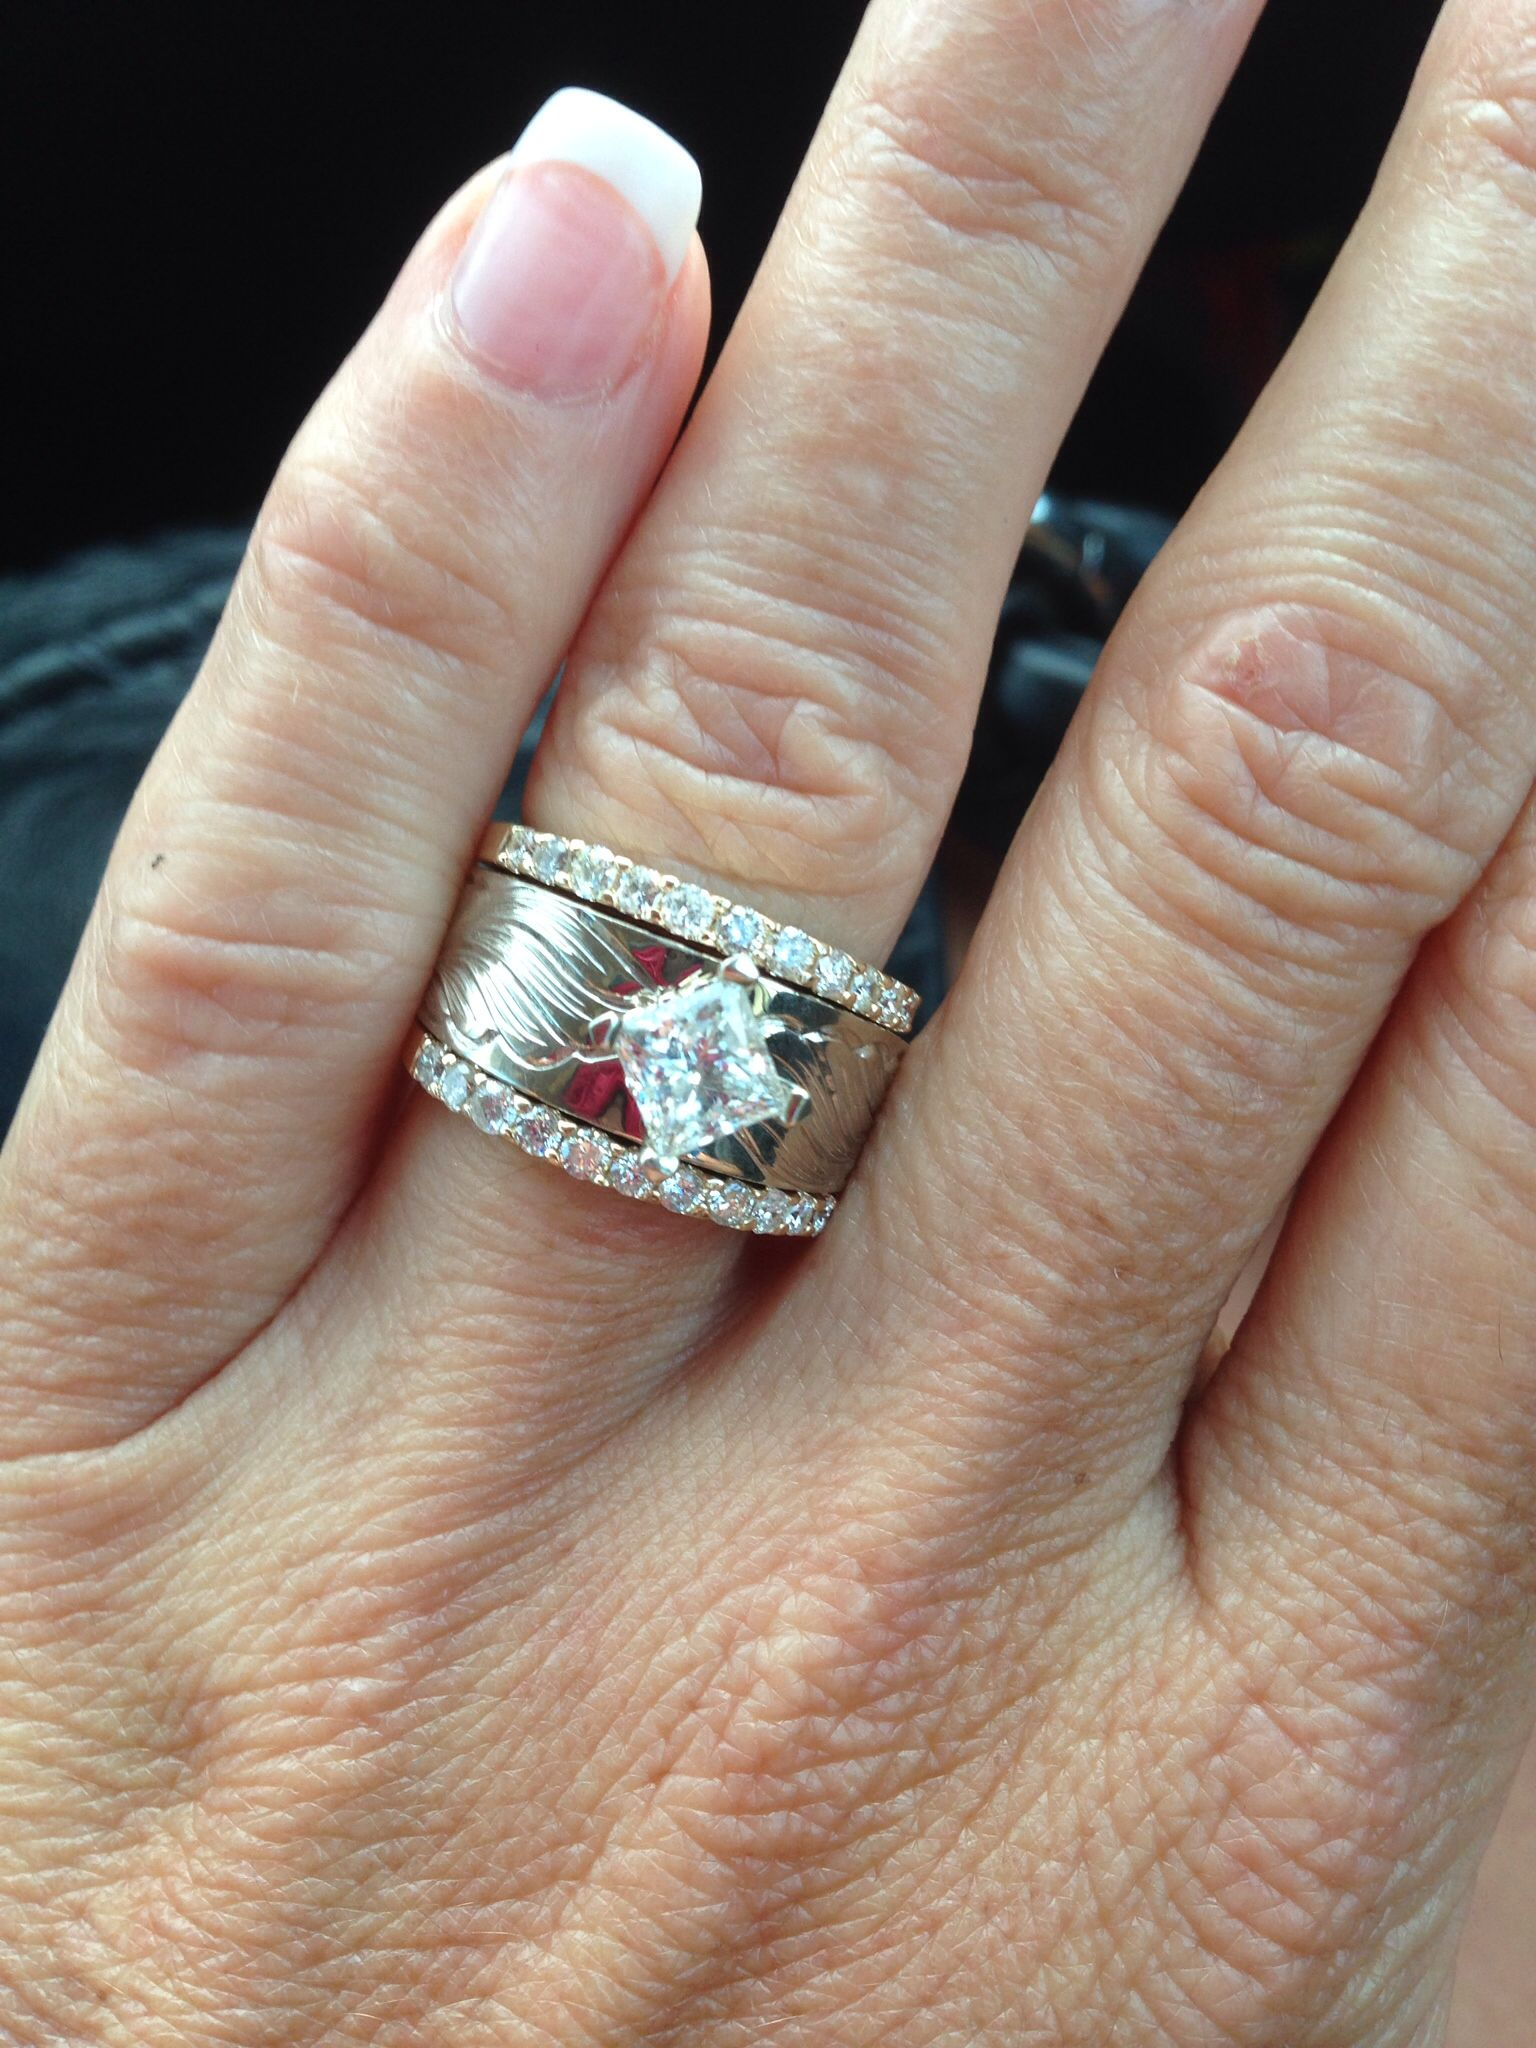 My awesome western wedding ring Cool things Pinterest Western